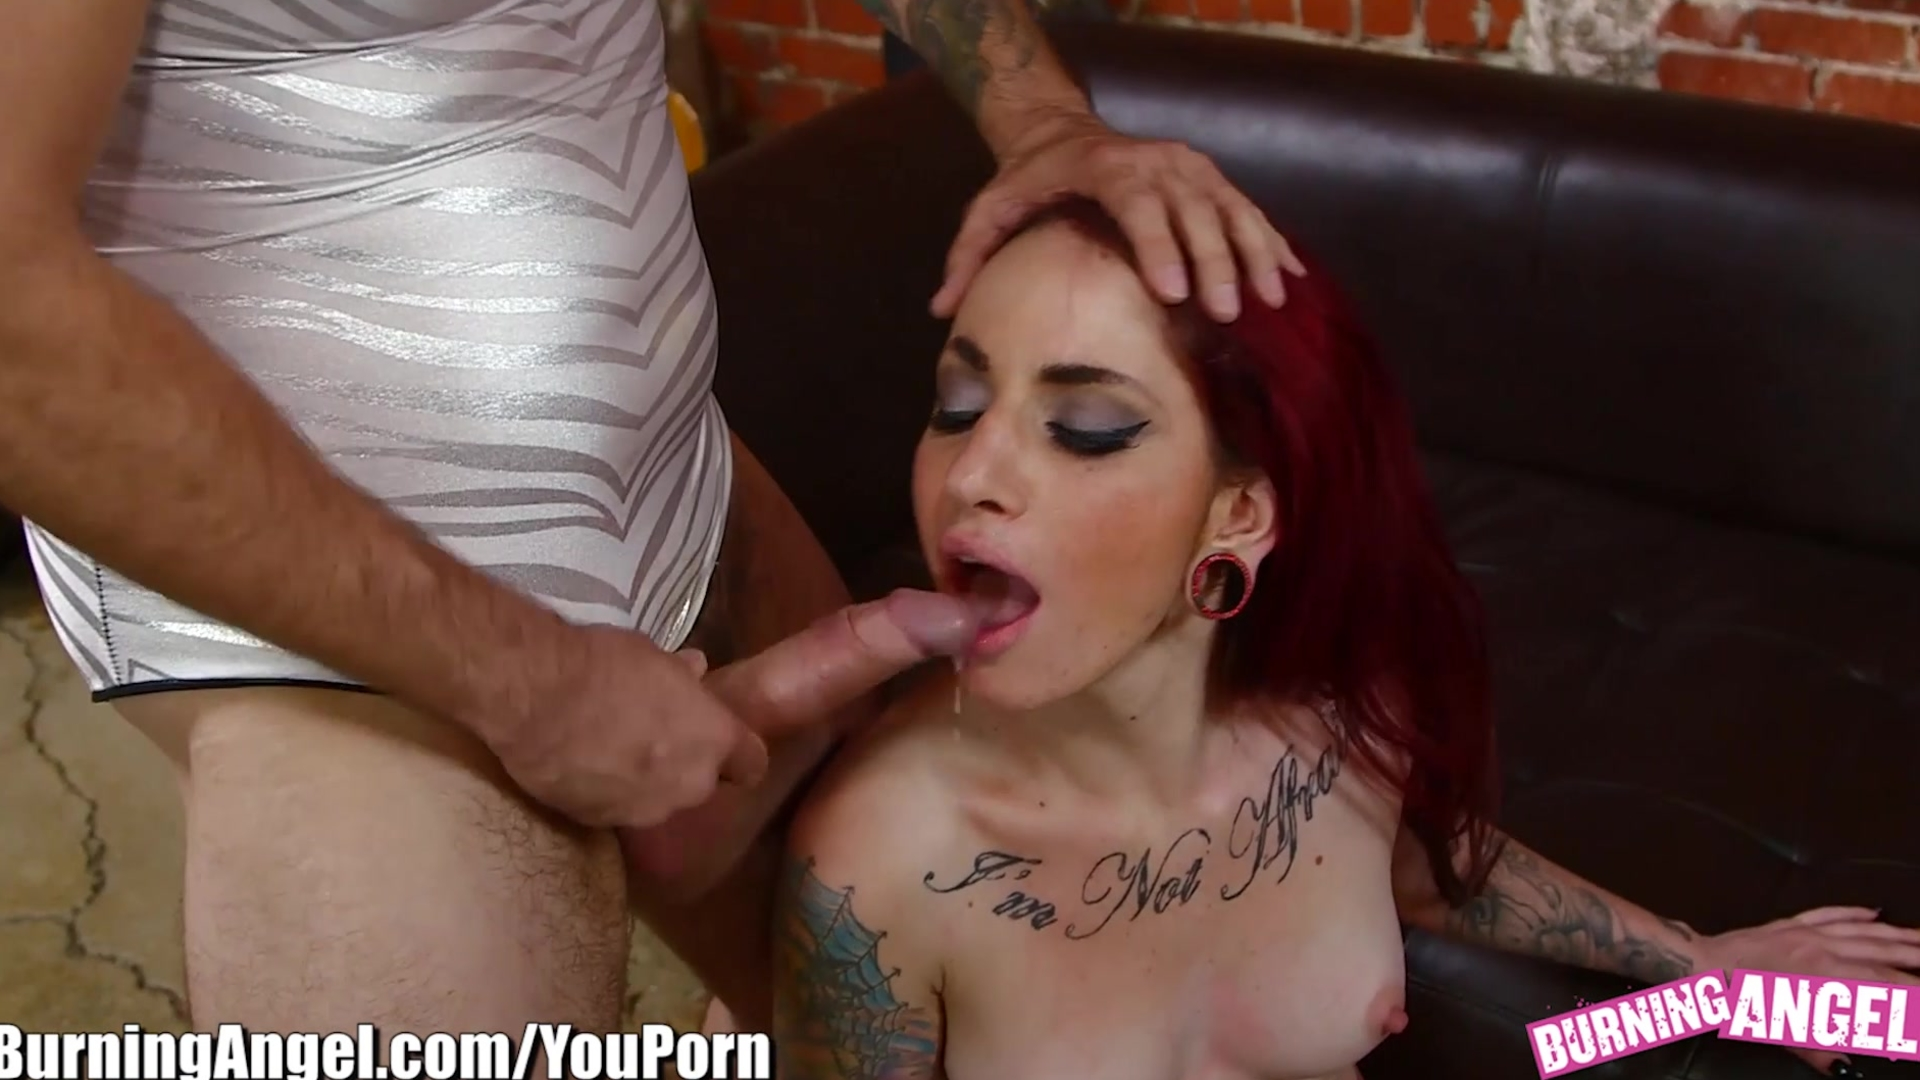 Evilangel punk chick hard deepthroat